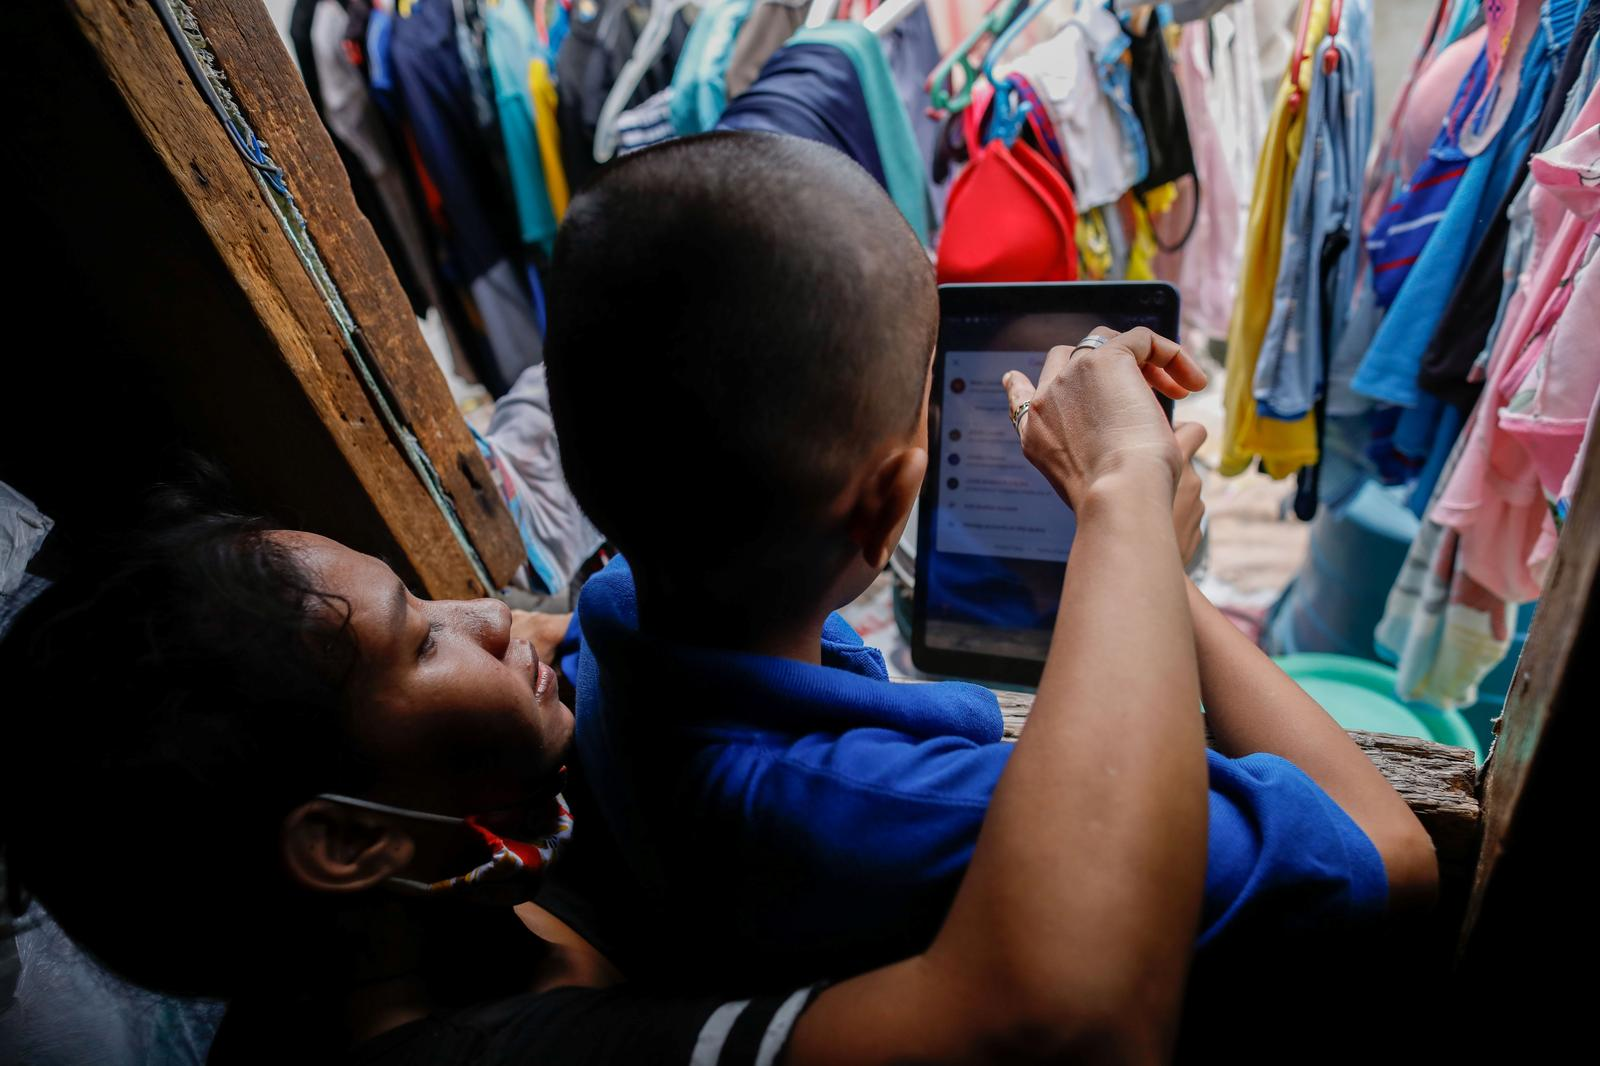 Jhay Ar Calma, 10, a grade 5 student, is helped by his mother Jonalyn Parulan as he prepares to take part in an online class with a tablet, provided to him by the local government, as schools remain closed during the coronavirus disease (COVID-19) outbreak, in their home in Sta. Mesa, Manila, Philippines, October 30, 2020. 'Sometimes we change the SIM card to a different provider so he doesn't have to study on the roof, but there's rarely enough money to spare for that,' Parulan told Reuters. Photo: Reuters